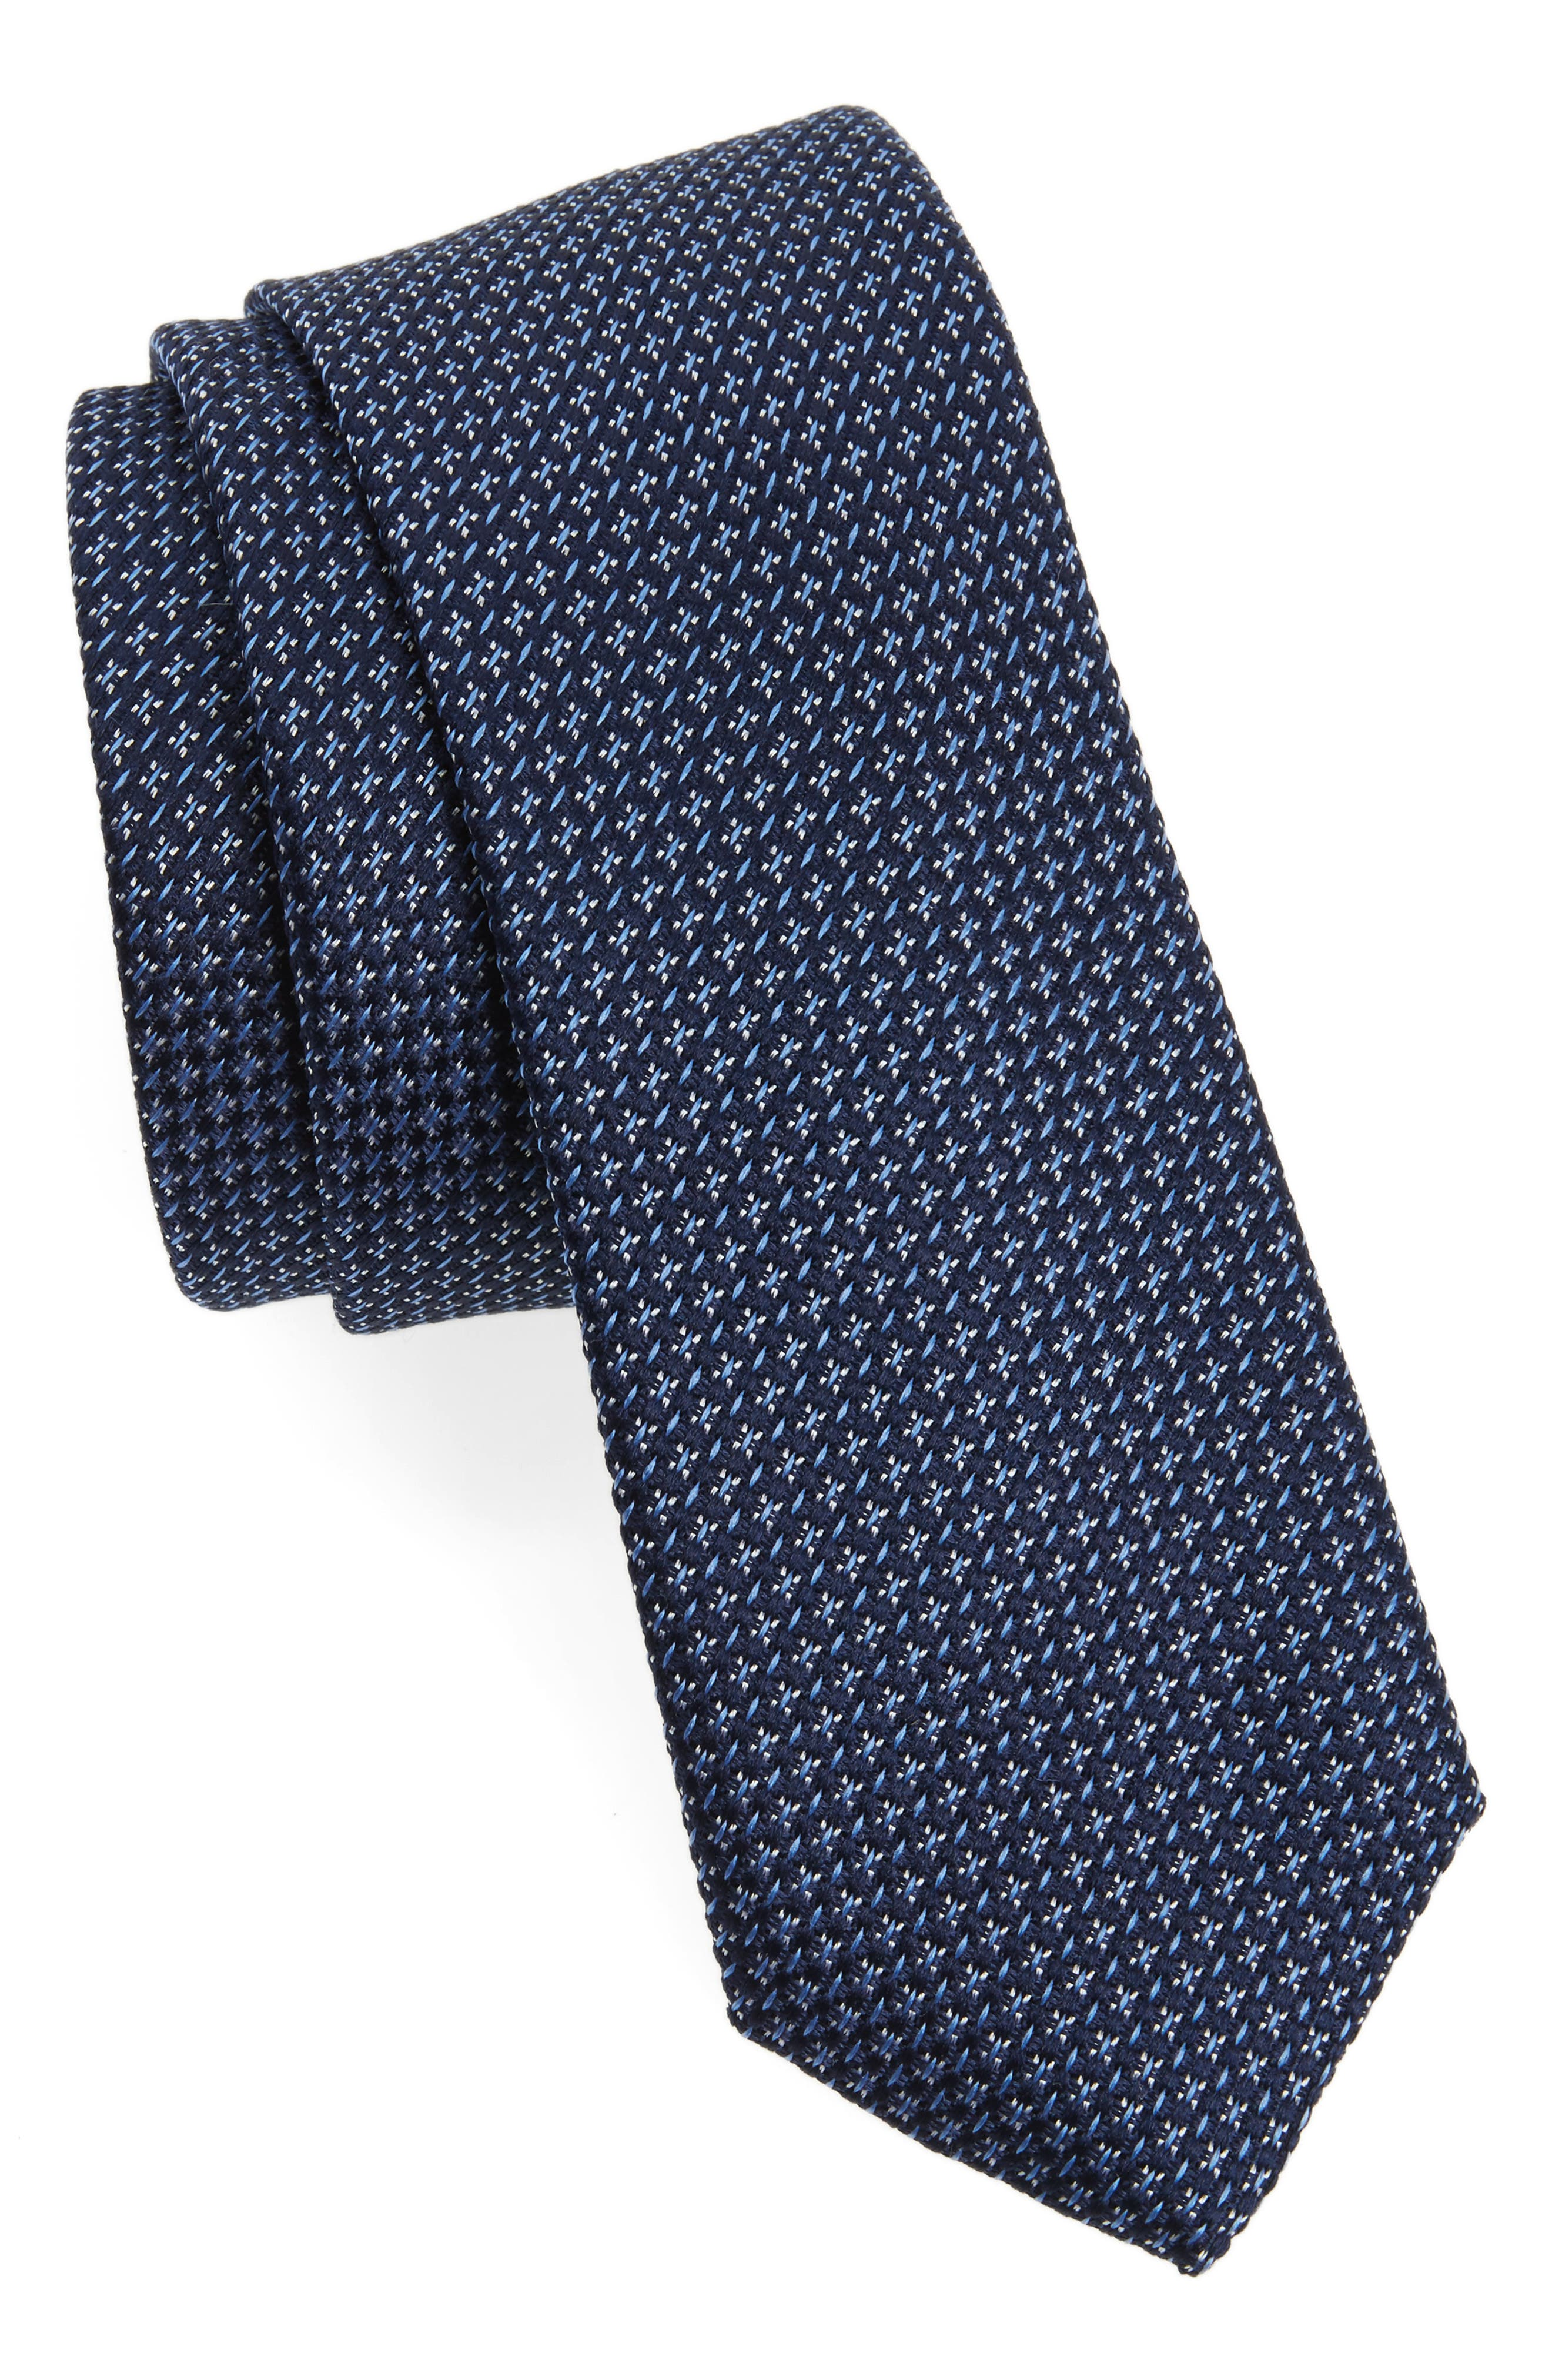 Alternate Image 1 Selected - Calibrate Knitex Solid Silk Tie